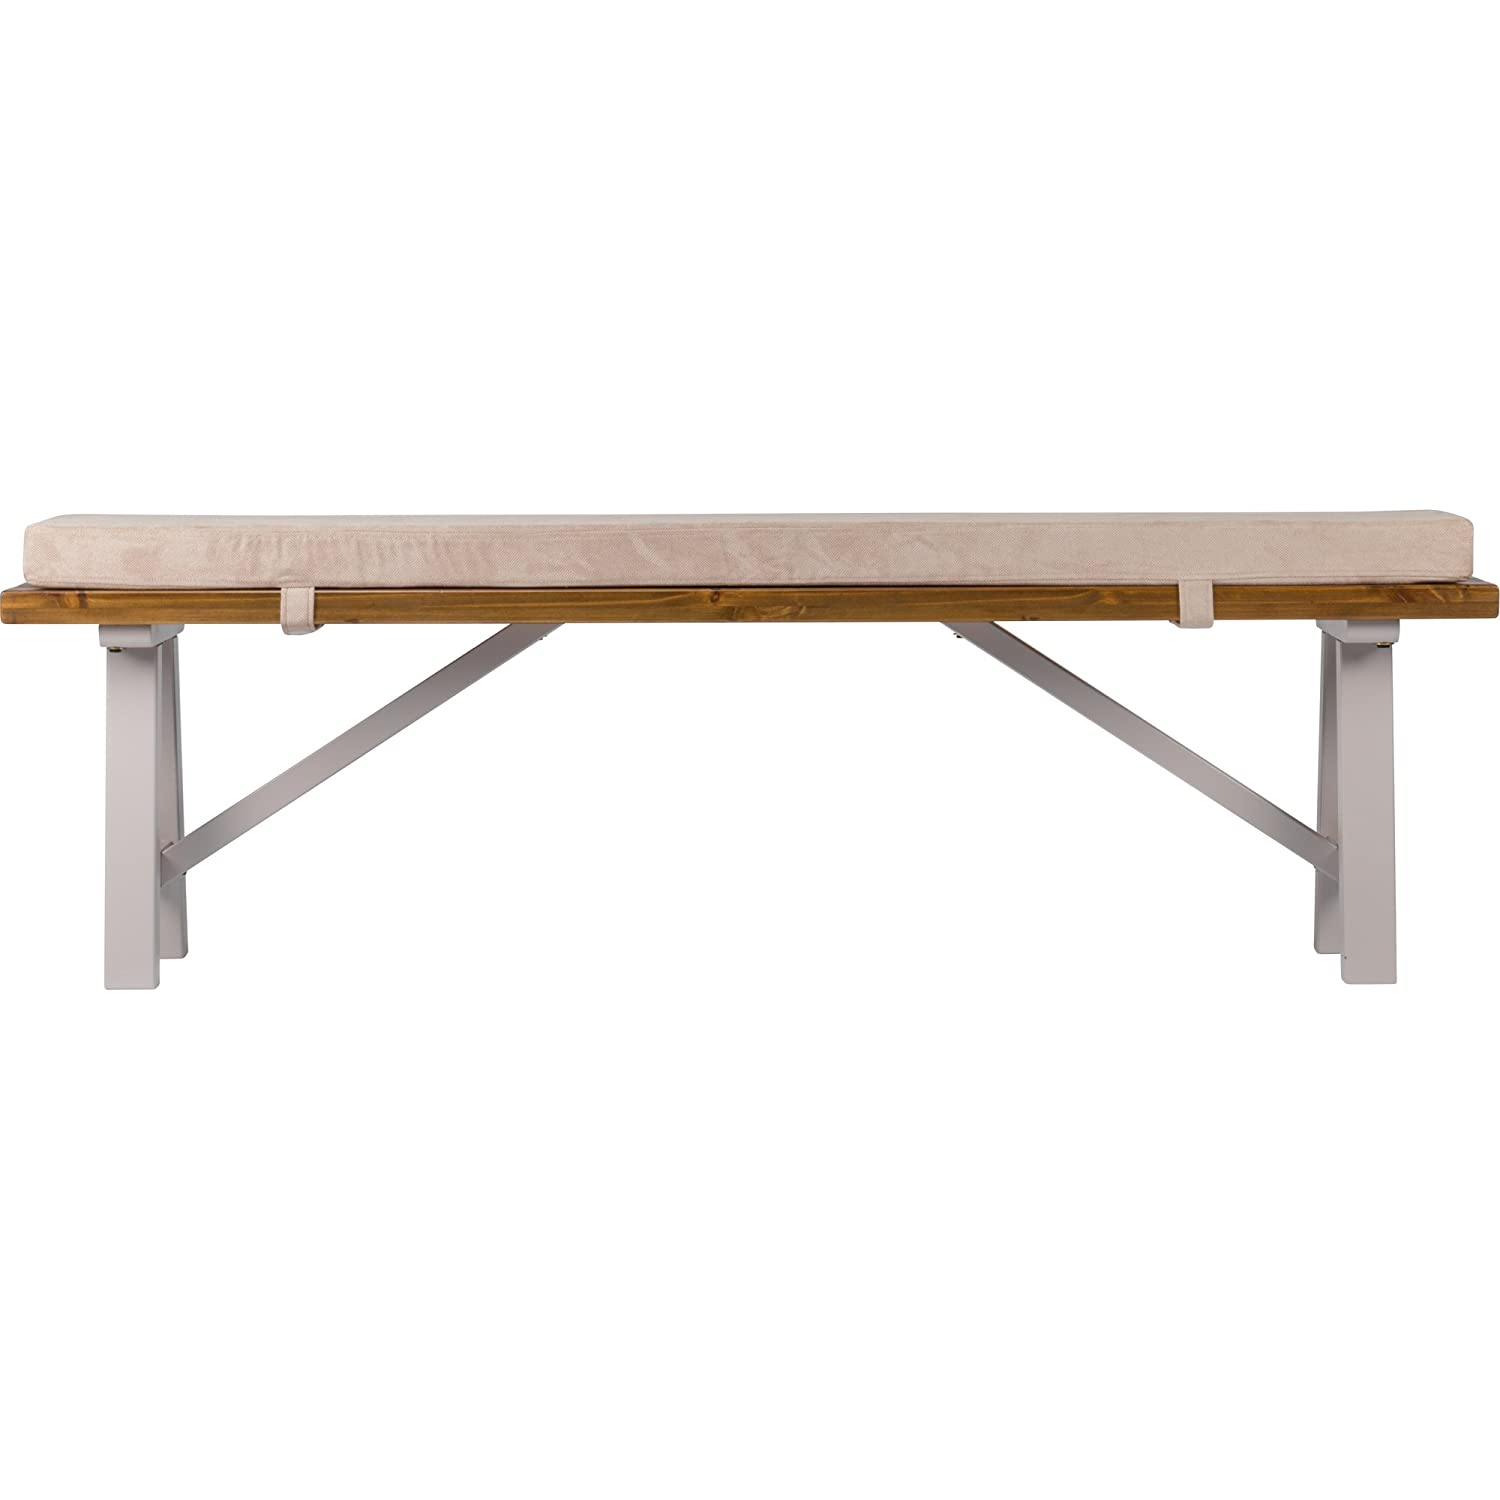 Solid wood top bench, built to last, complete with seat cushion for total comfort JTF Mega Discount Warehouse